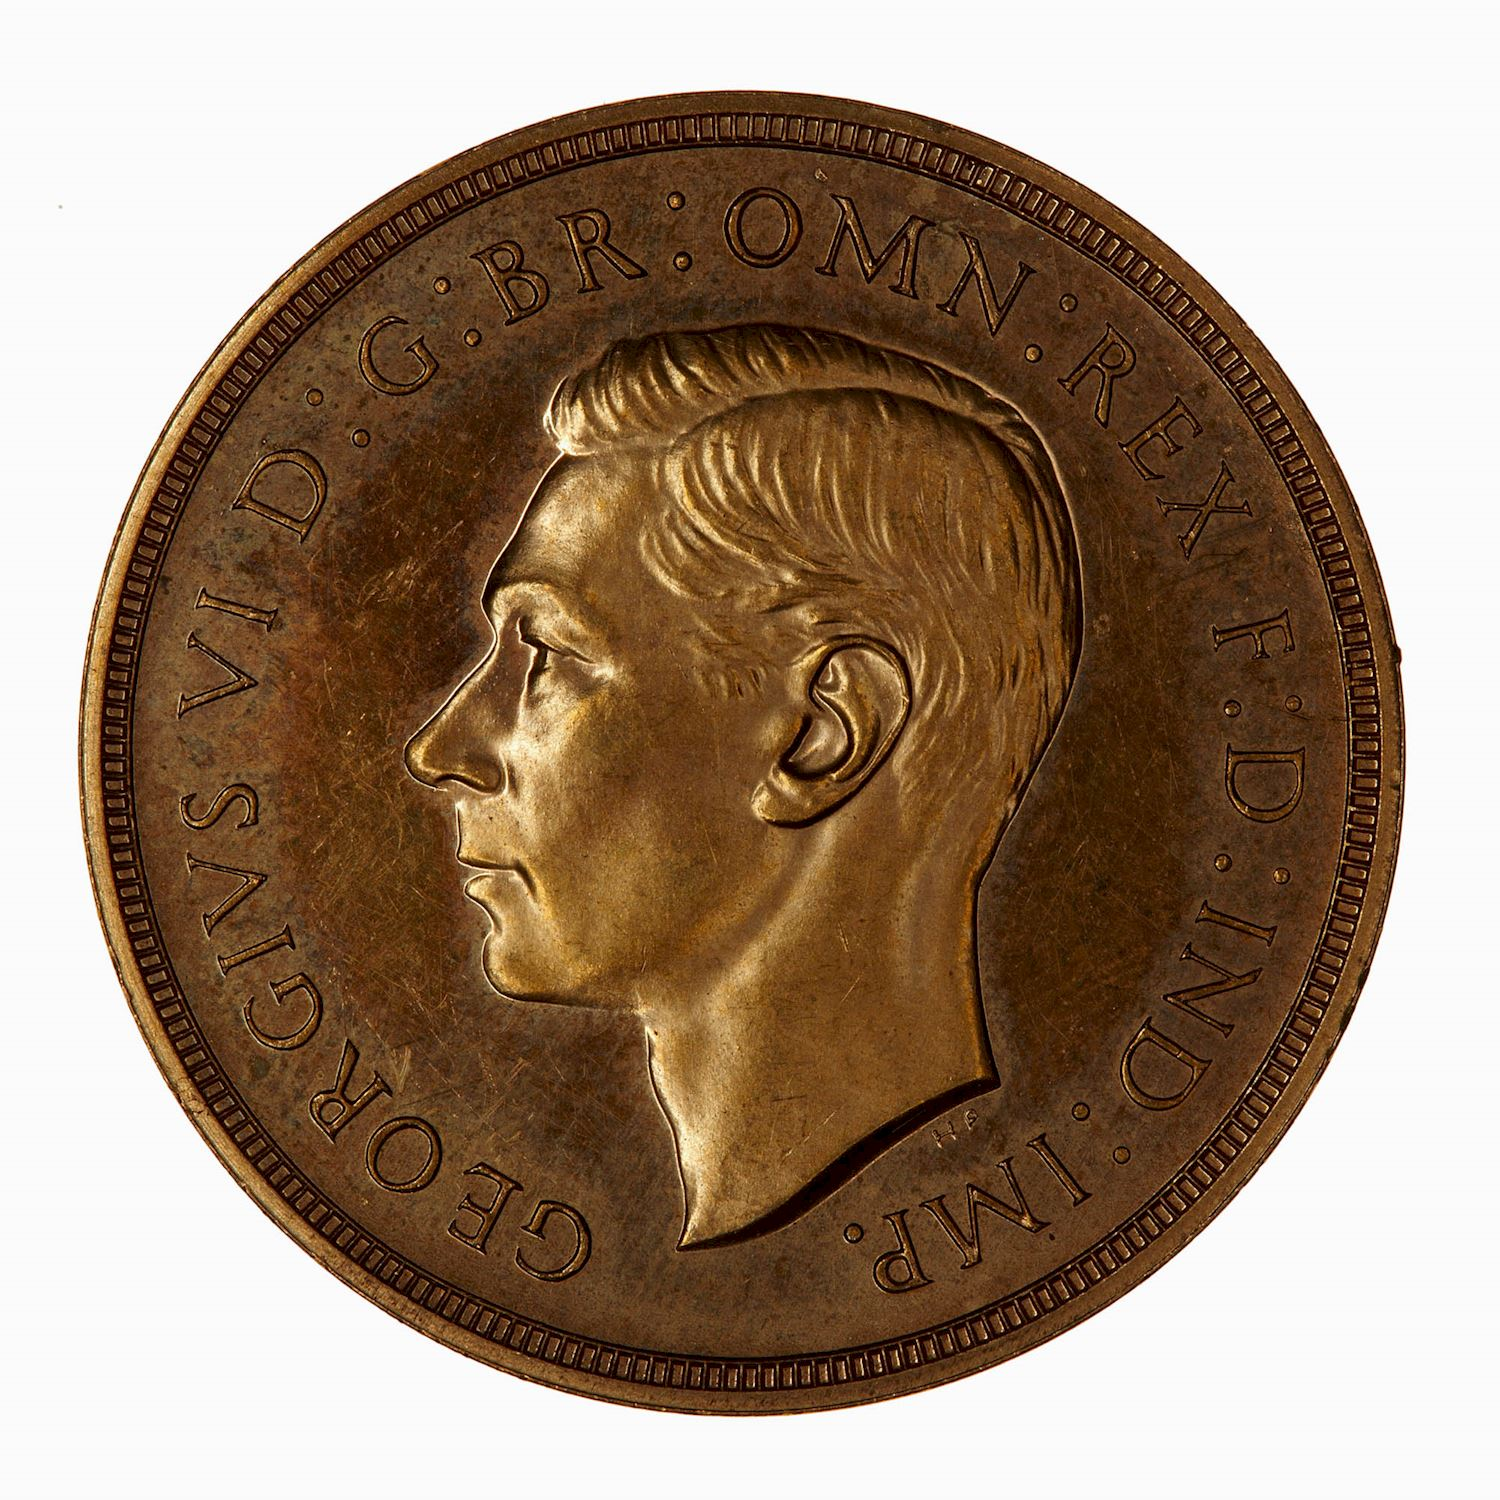 Two Pounds (Pre-decimal): Photo Proof Coin - 2 Pounds, George VI, Great Britain, 1937